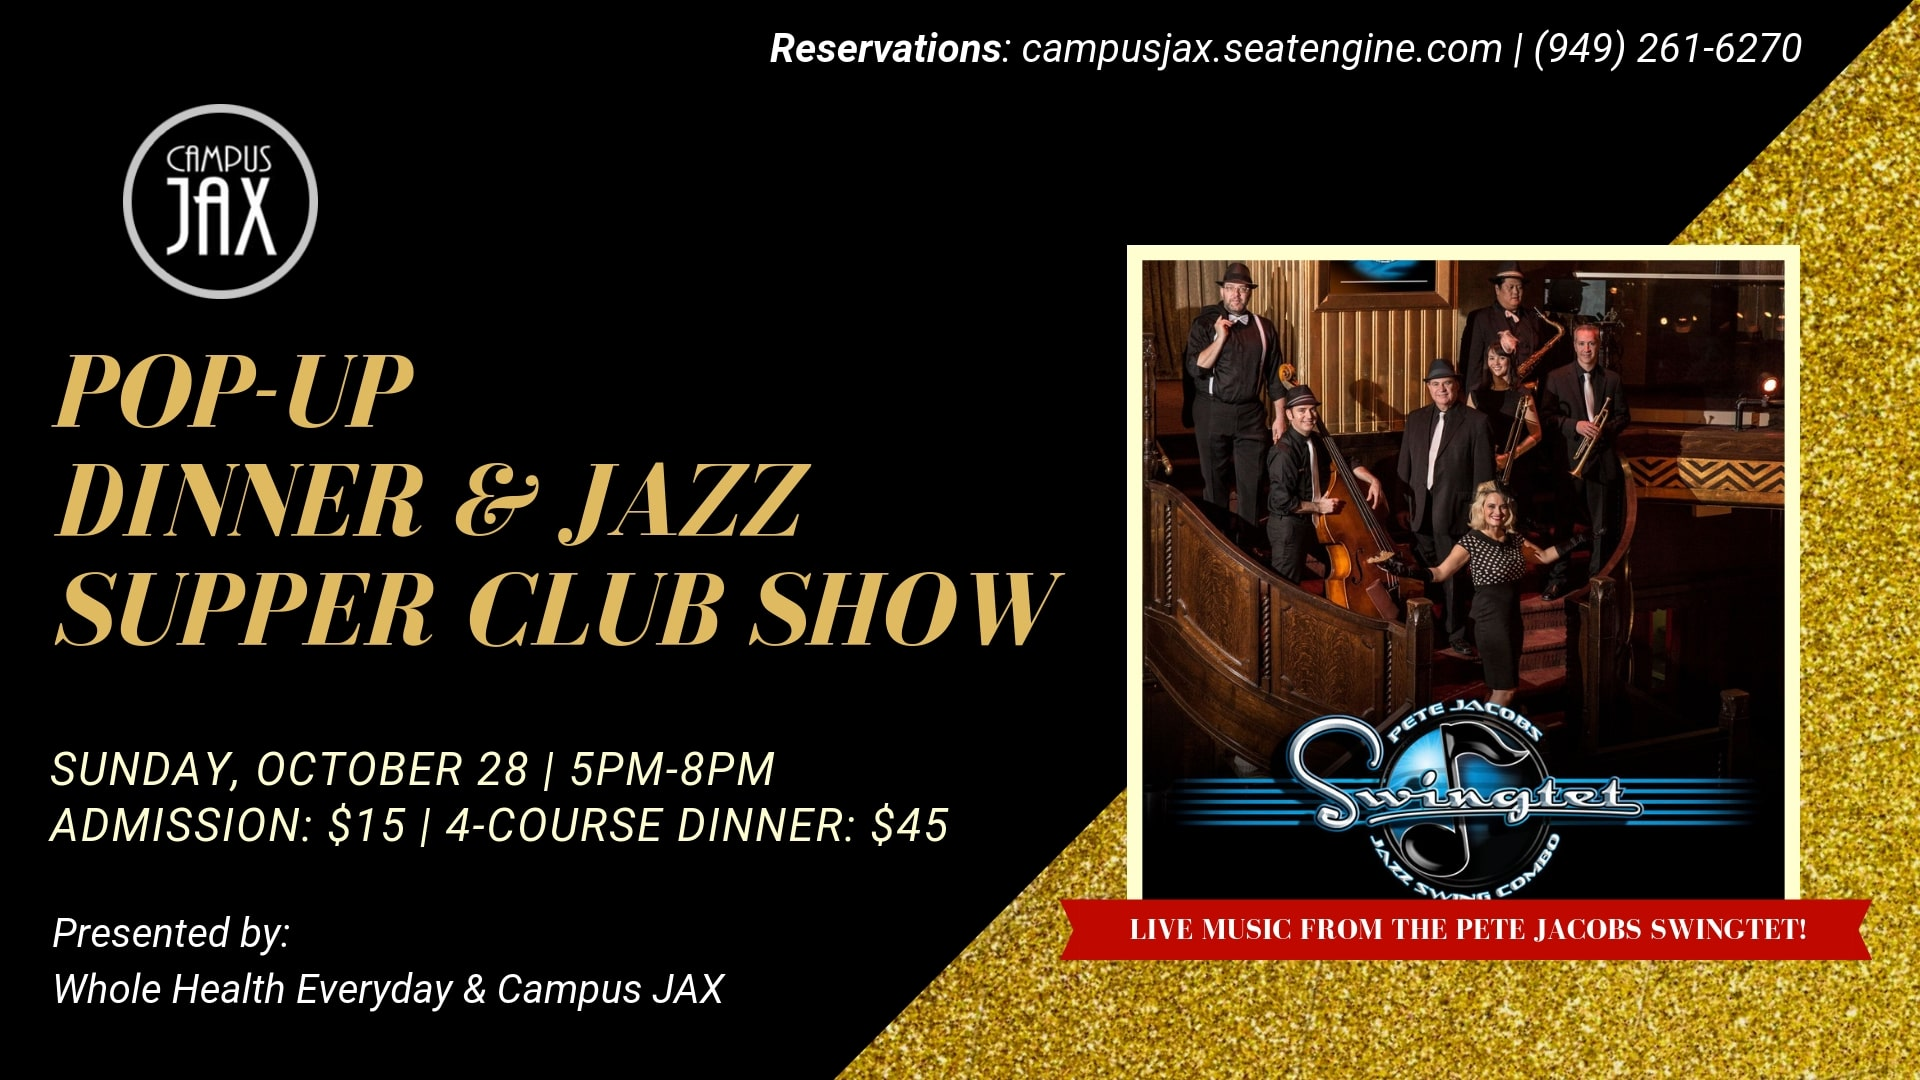 October 28 | WHOLE HEALTH EVERYDAY POP UP DINNER AND JAZZ SUPPER CLUB SHOW featuring THE PETE JACOBS SWINGTET